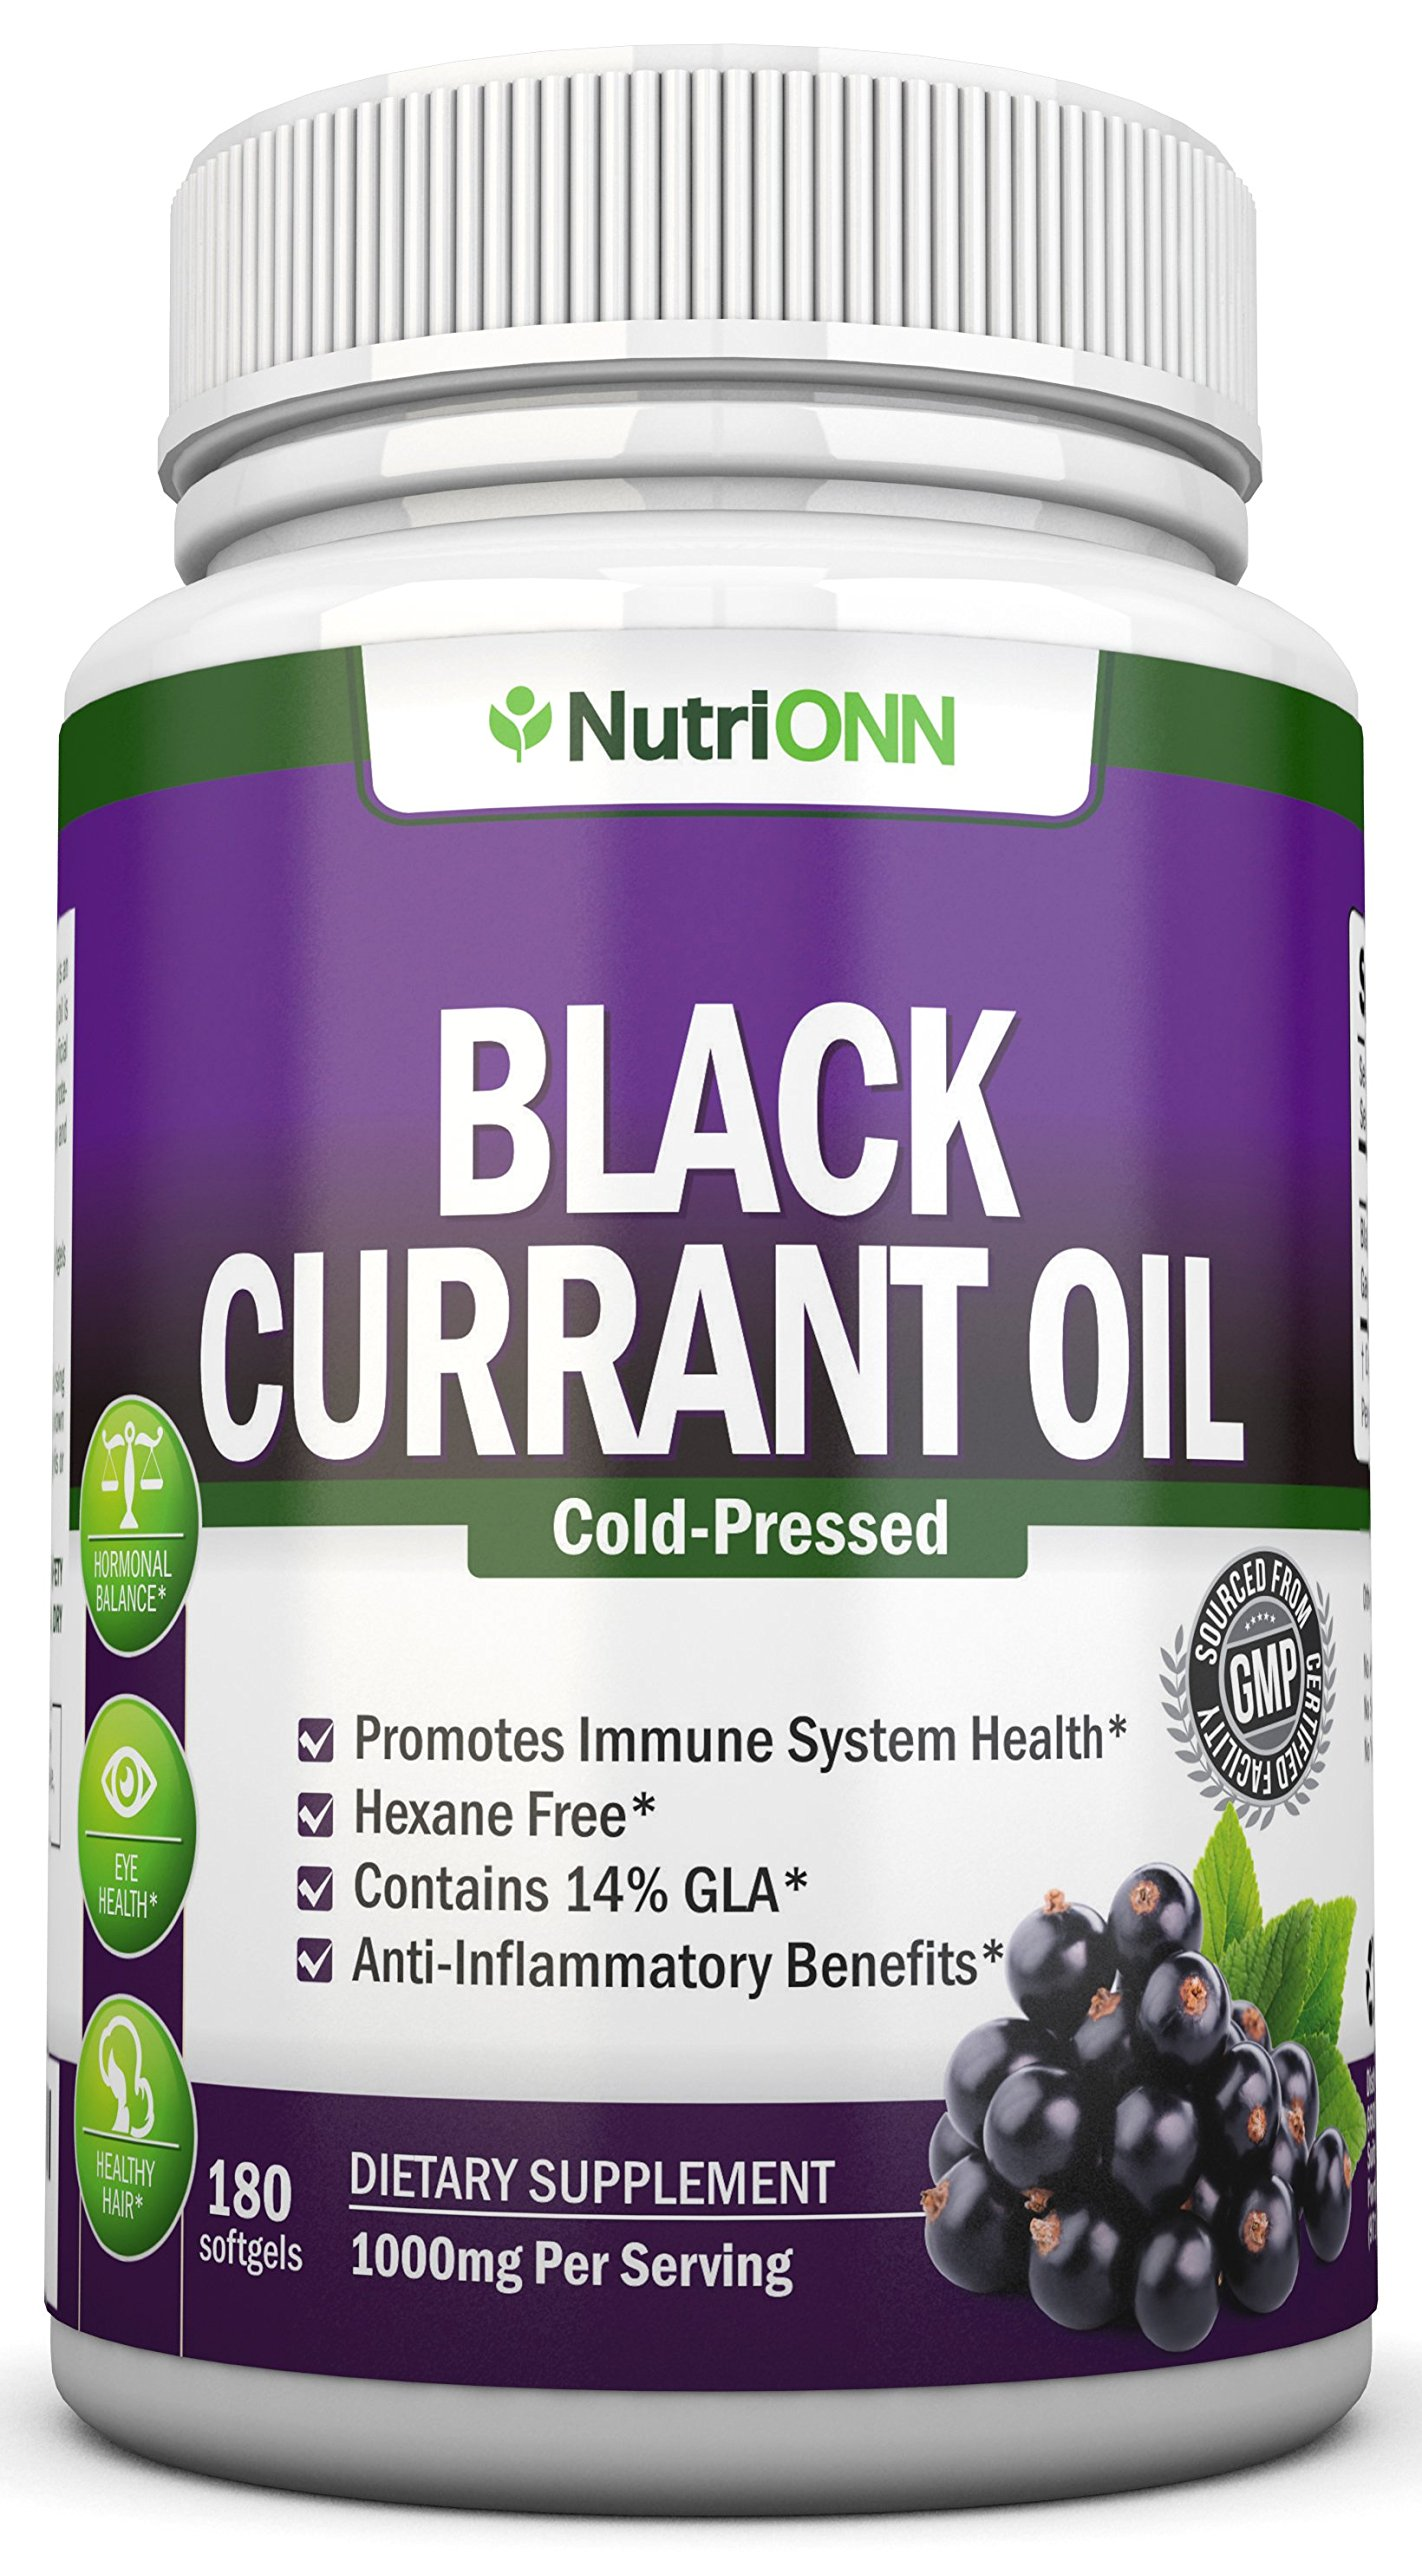 Black Currant Oil - 1000 Mg - 180 Softgels - Cold-Pressed Pure Black Currant Seed Oil - Hexane Free - 140mg GLA Per Serving - Regulates Hormonal Balance - Great For Immune System, Hair, Skin and Heart by NutriONN